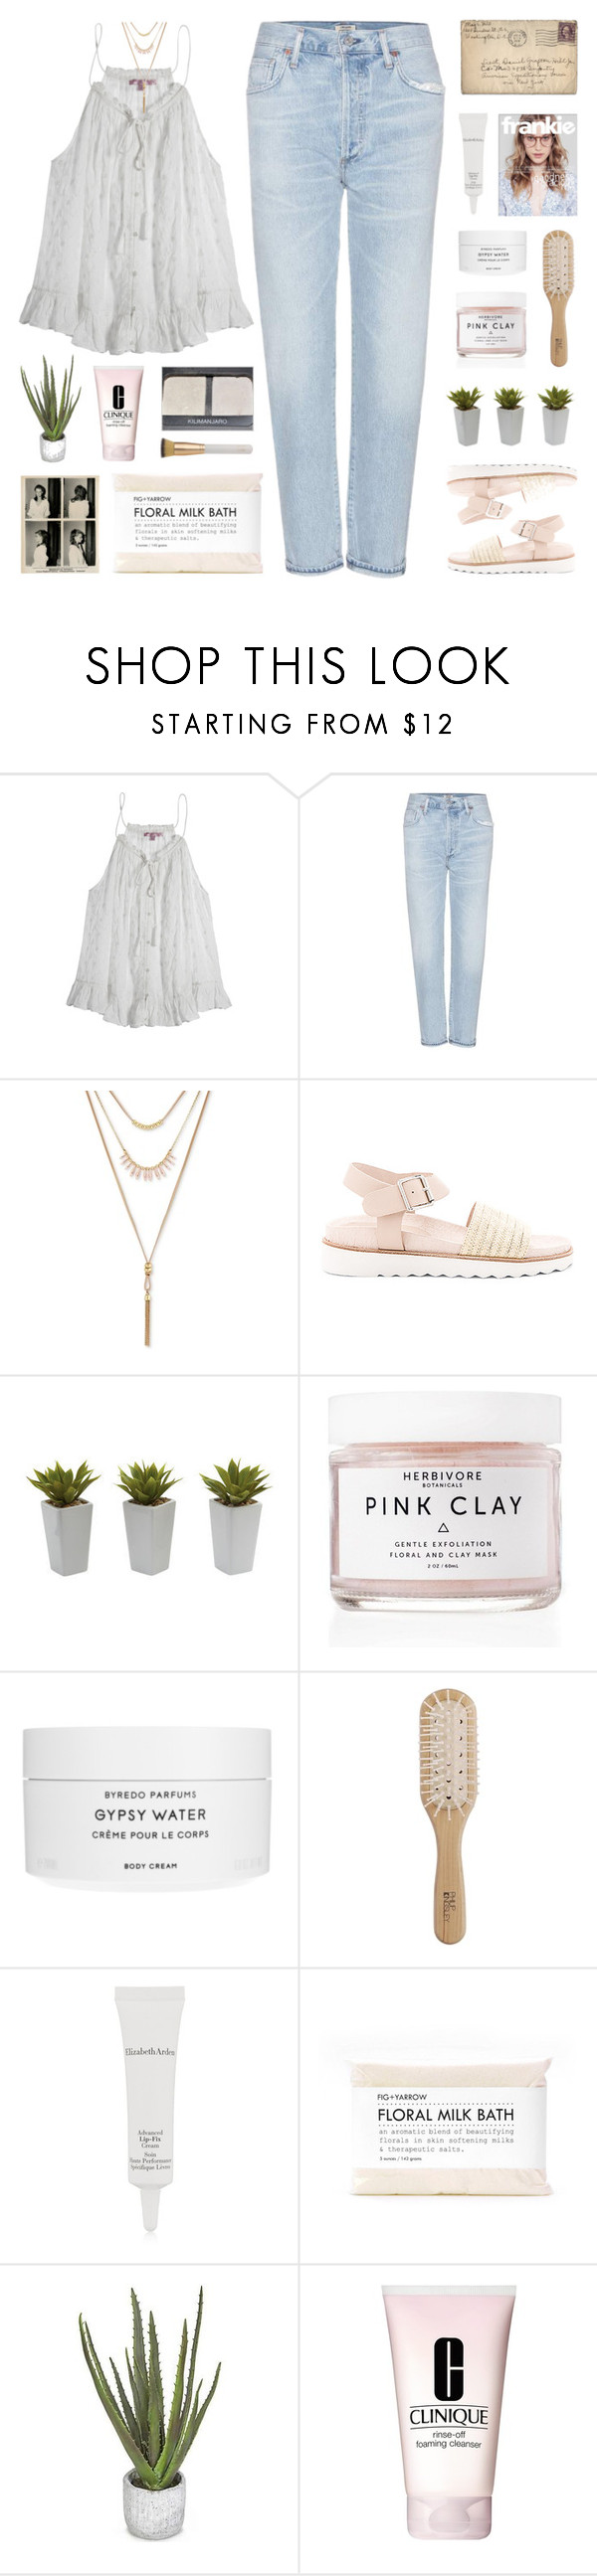 """""""even if"""" by my-pink-wings ❤ liked on Polyvore featuring Calypso St. Barth, Citizens of Humanity, Lucky Brand, Sol Sana, Nearly Natural, Herbivore, Byredo, Philip Kingsley, Elizabeth Arden and Tiffany & Co."""